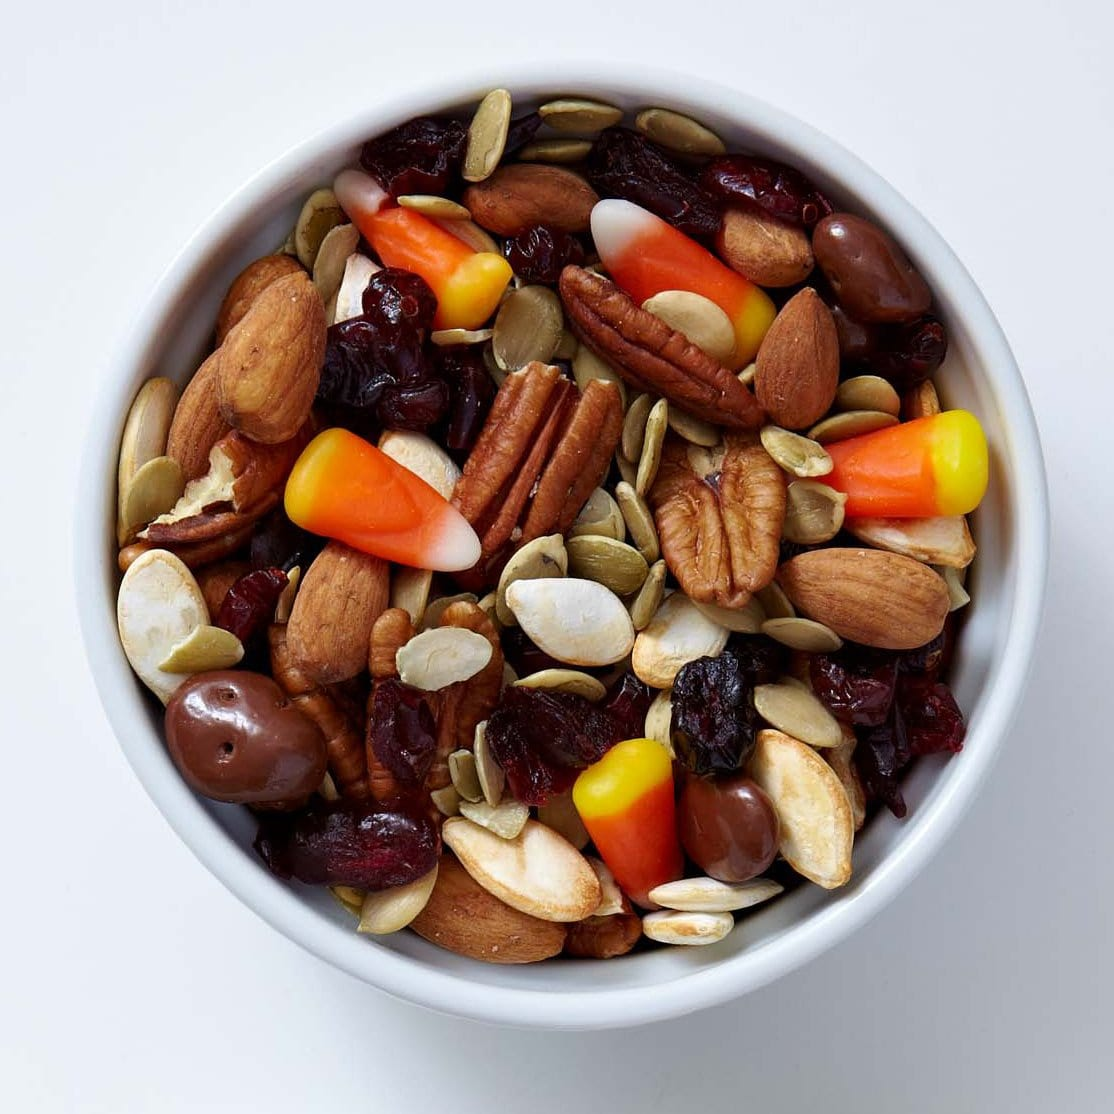 Darcy Miller Designs, 2. Snack Mix, Party Snack, Snack Mix Recipe, Candy Corn, Trail Mix, Fall Snacks